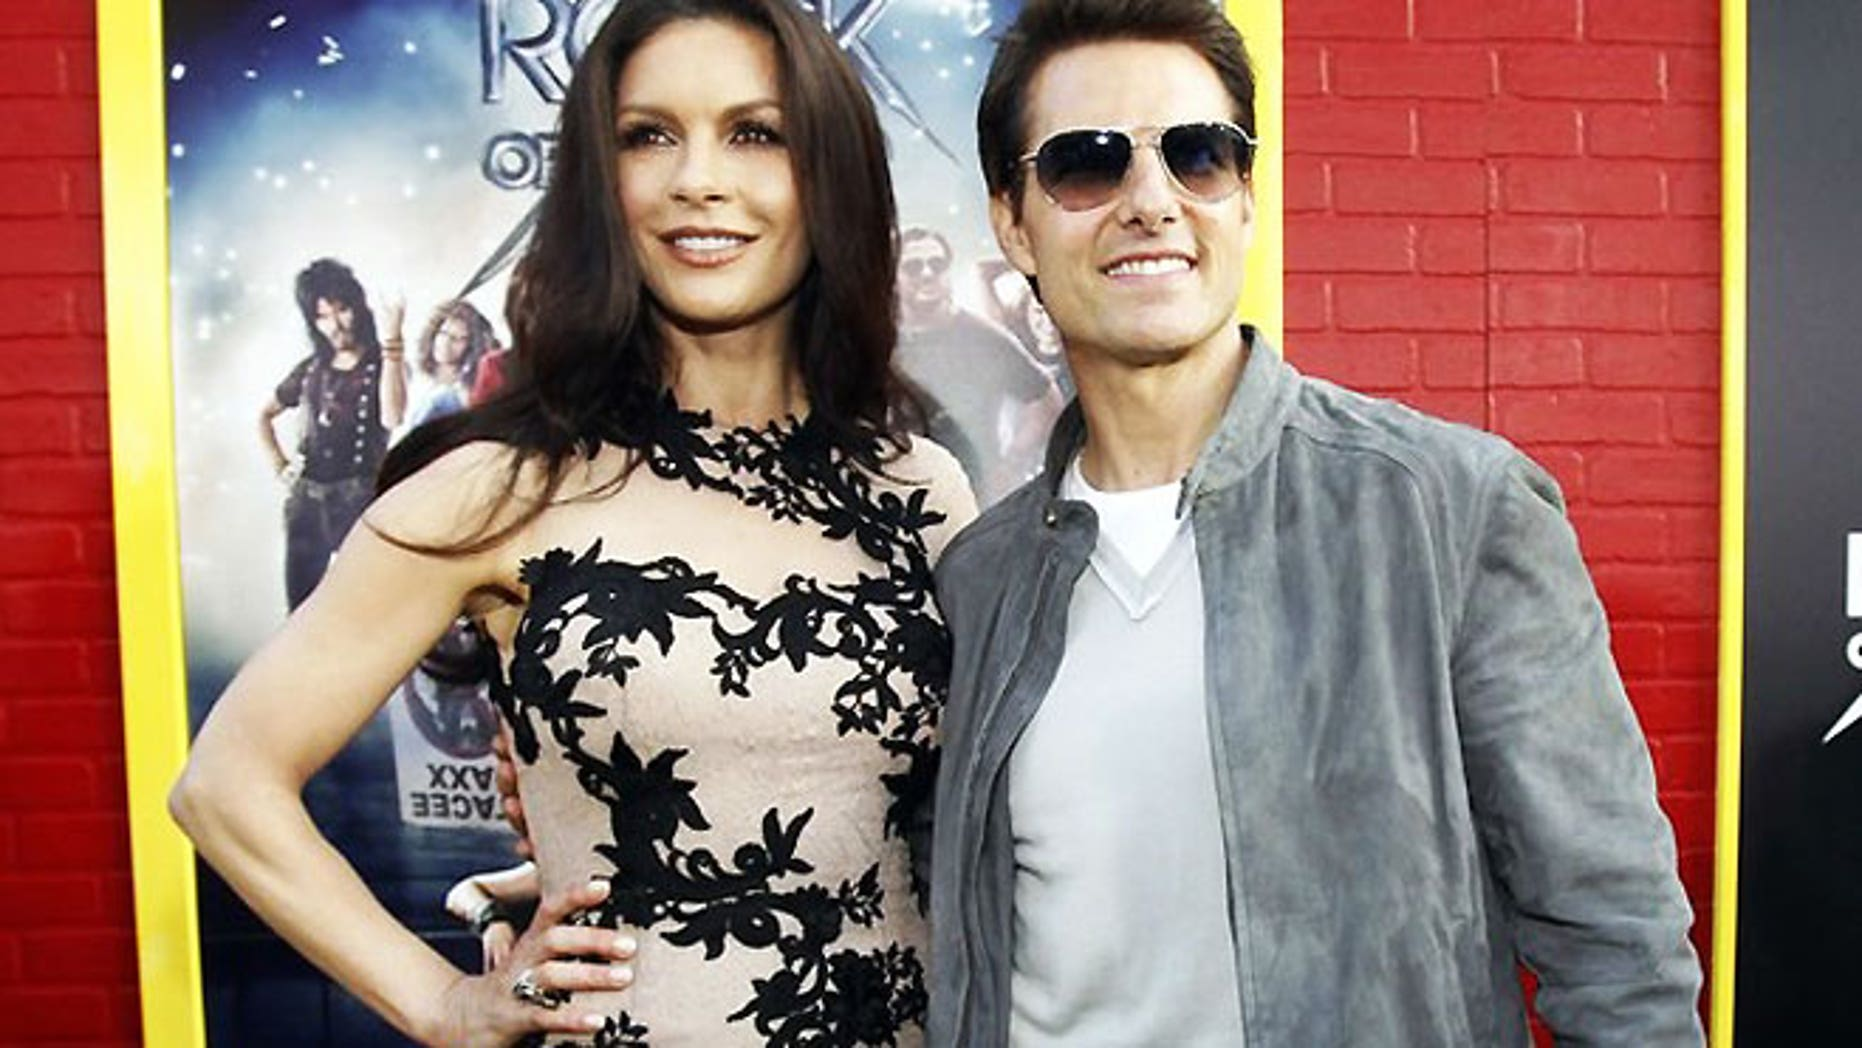 """June 8: Cast members Tom Cruise and Catherine Zeta-Jones pose at the premiere of """"Rock of Ages"""" at the Grauman's Chinese theatre in Hollywood, California."""